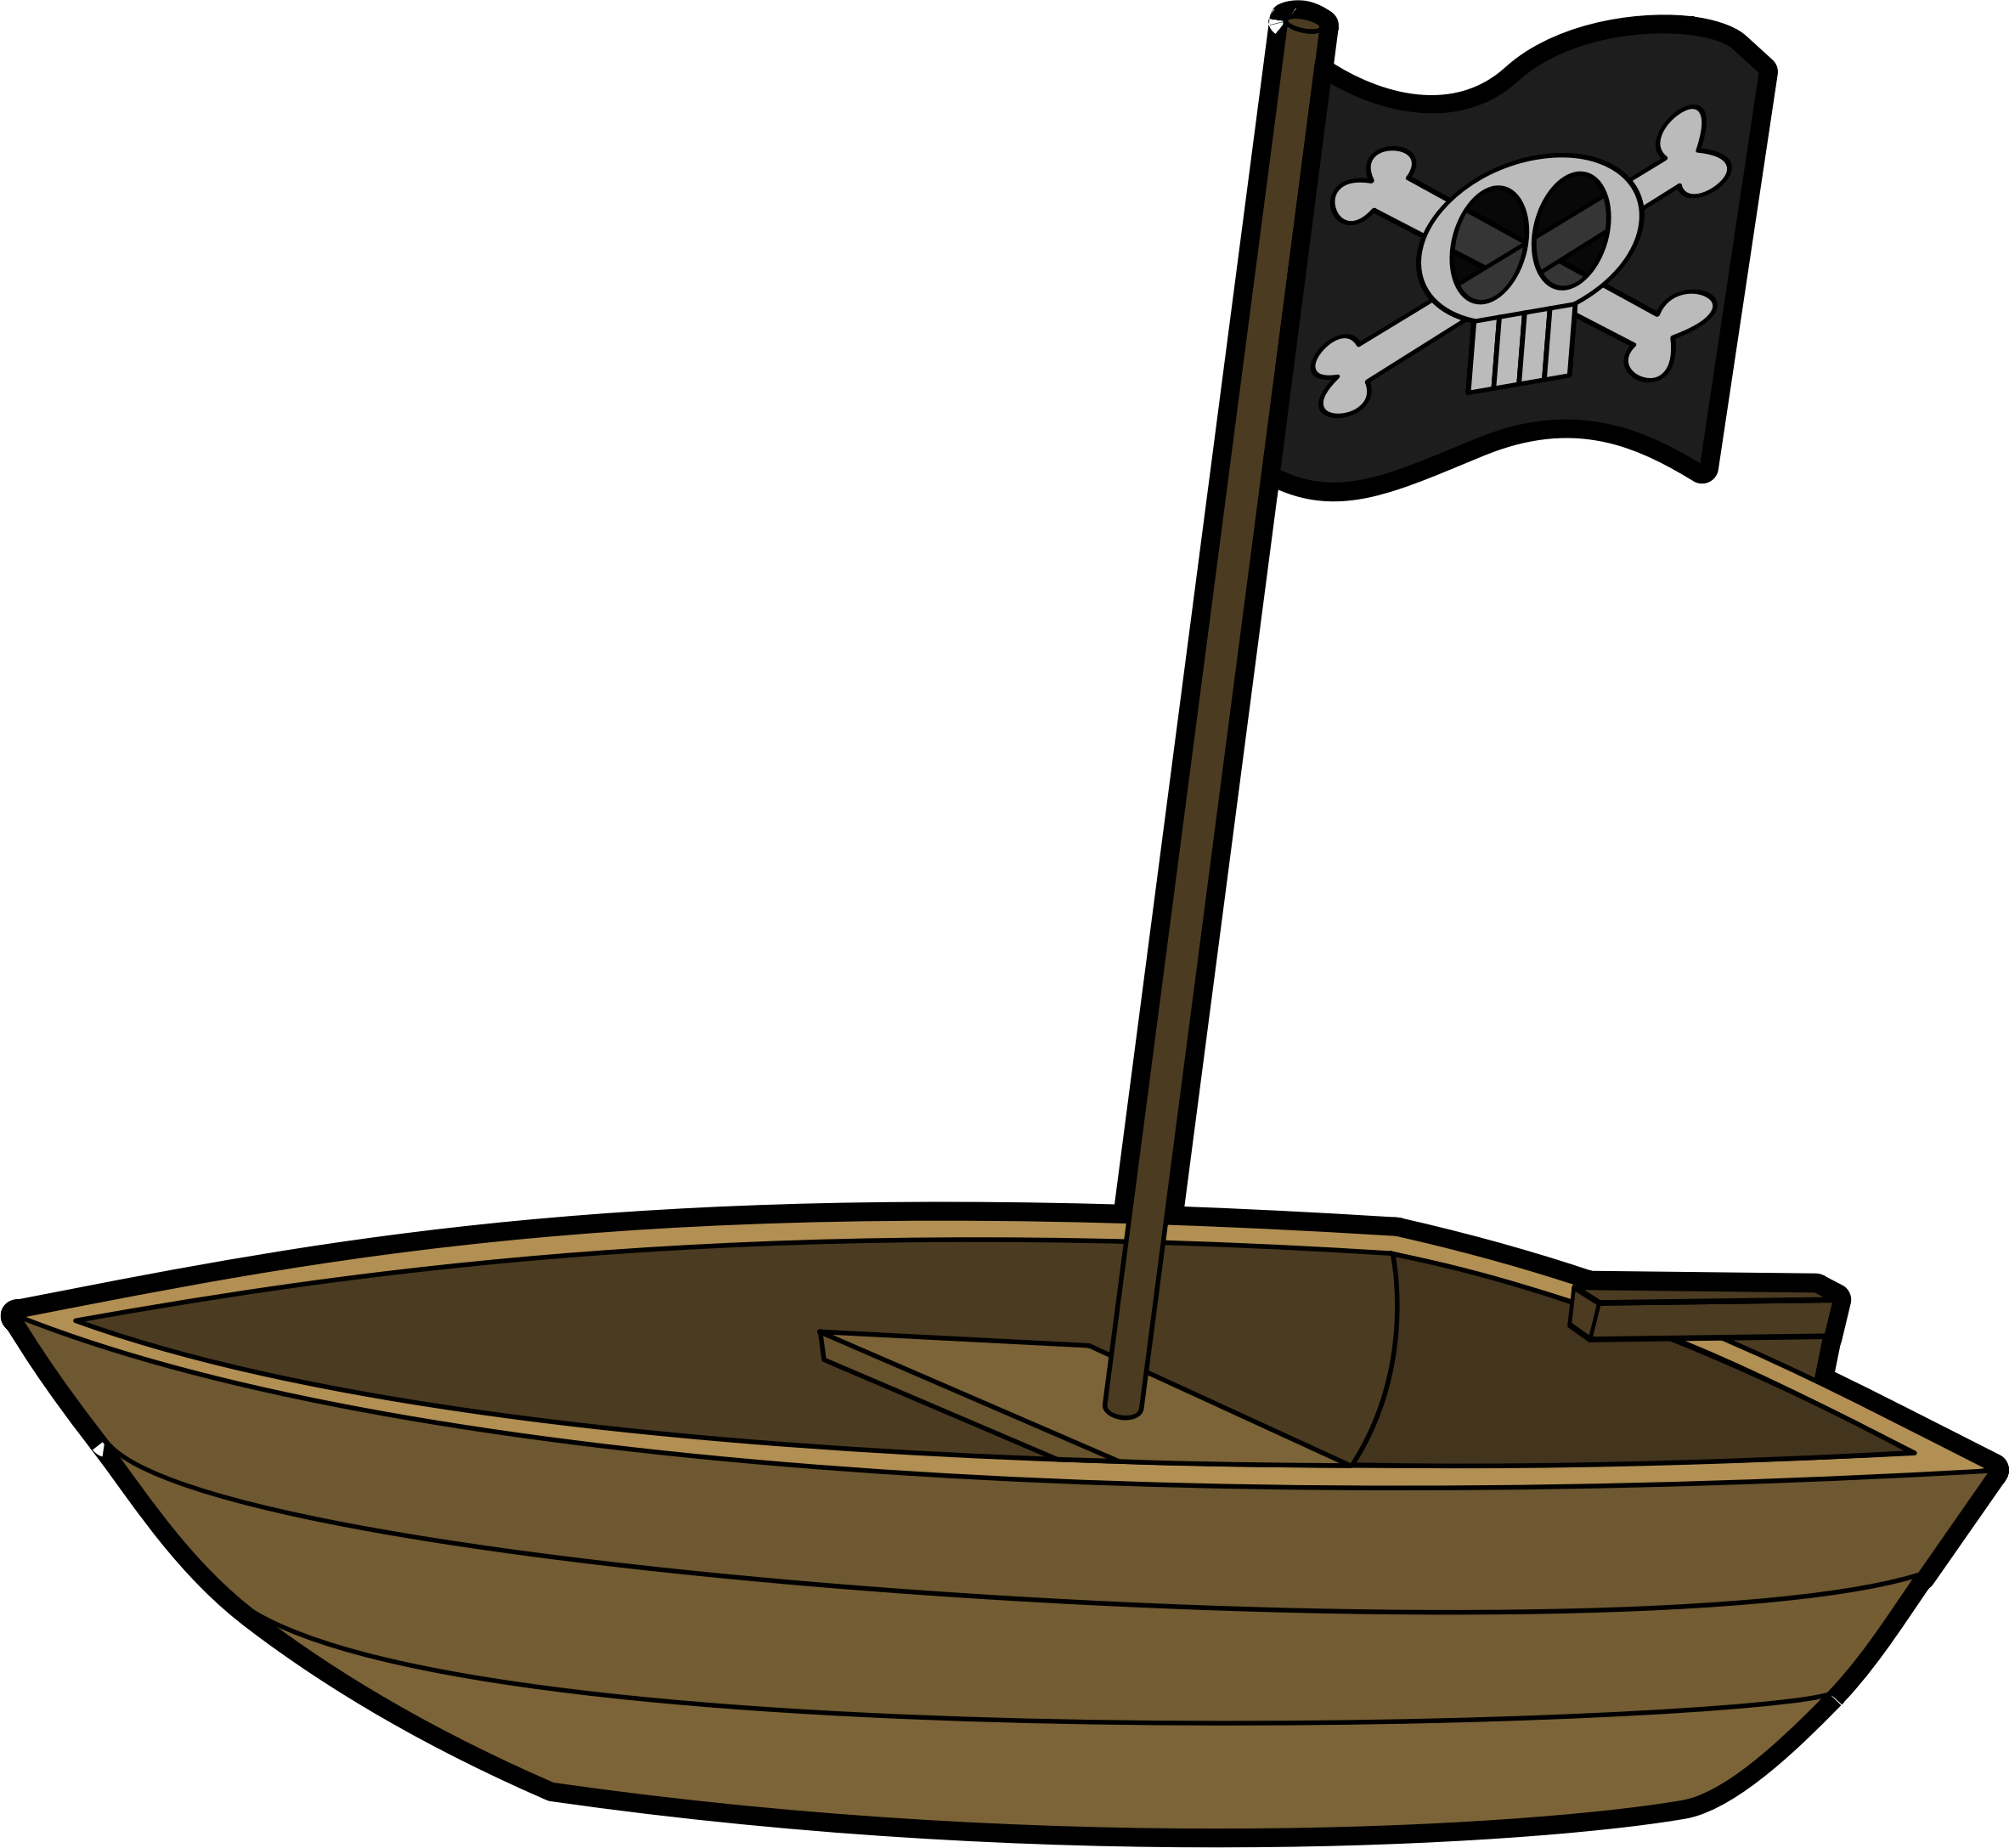 Turkey on a boat clipart image download Mayflower Ship Clipart at GetDrawings.com | Free for personal use ... image download